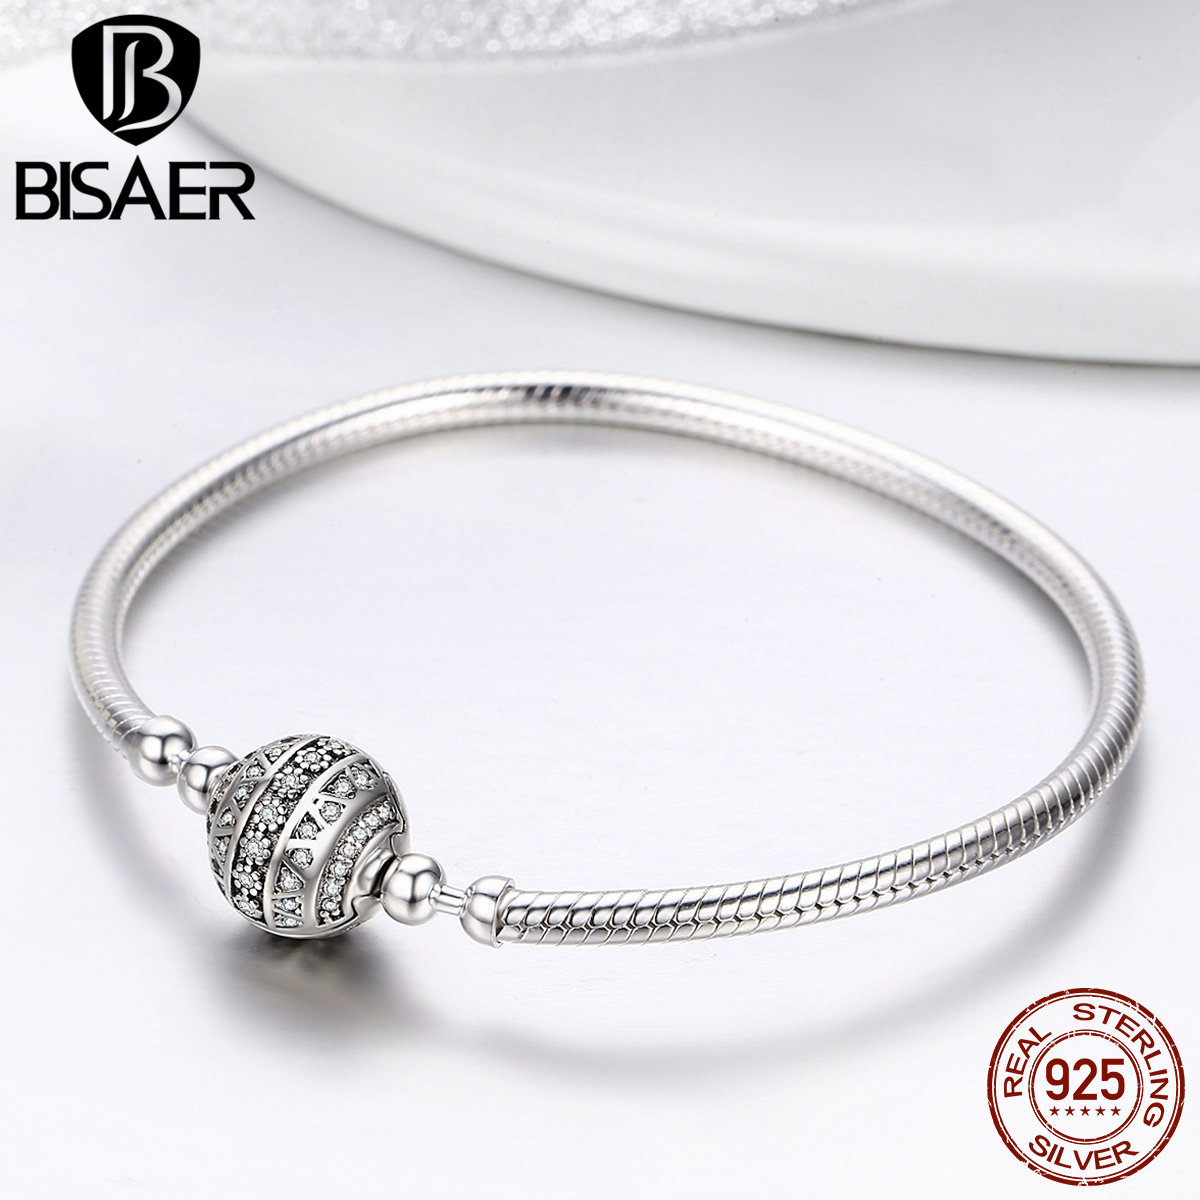 Femme Bracelet pulsera 925 Sterling Silver Delicate Life Basic Chain Charm Bracelet for Women Fine Jewelry DIY Accessories Gift delicate colorful hand knitted bracelet for women one piece